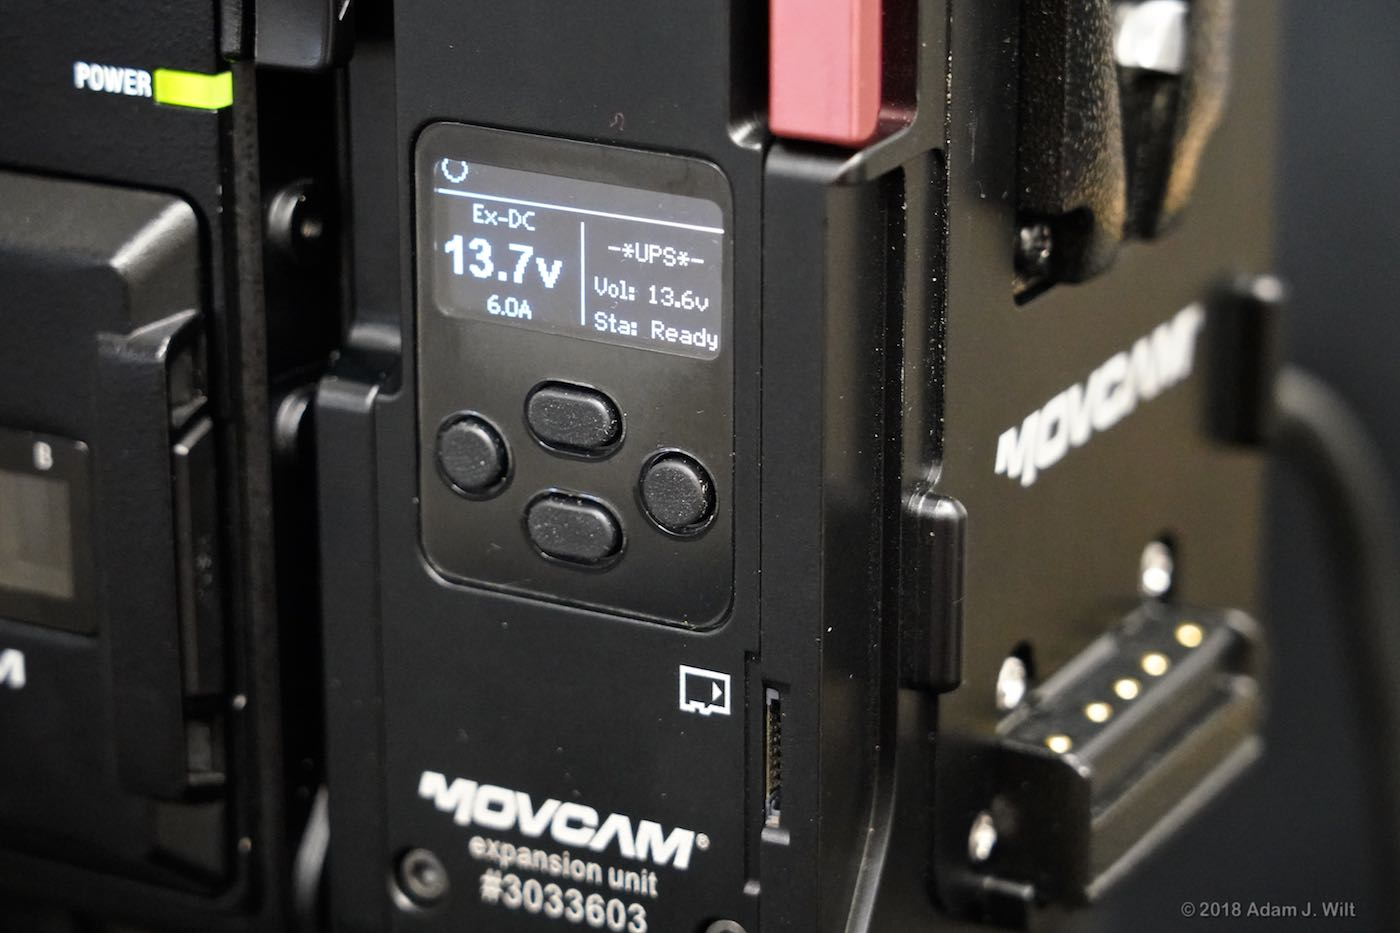 MOVCAM, right side